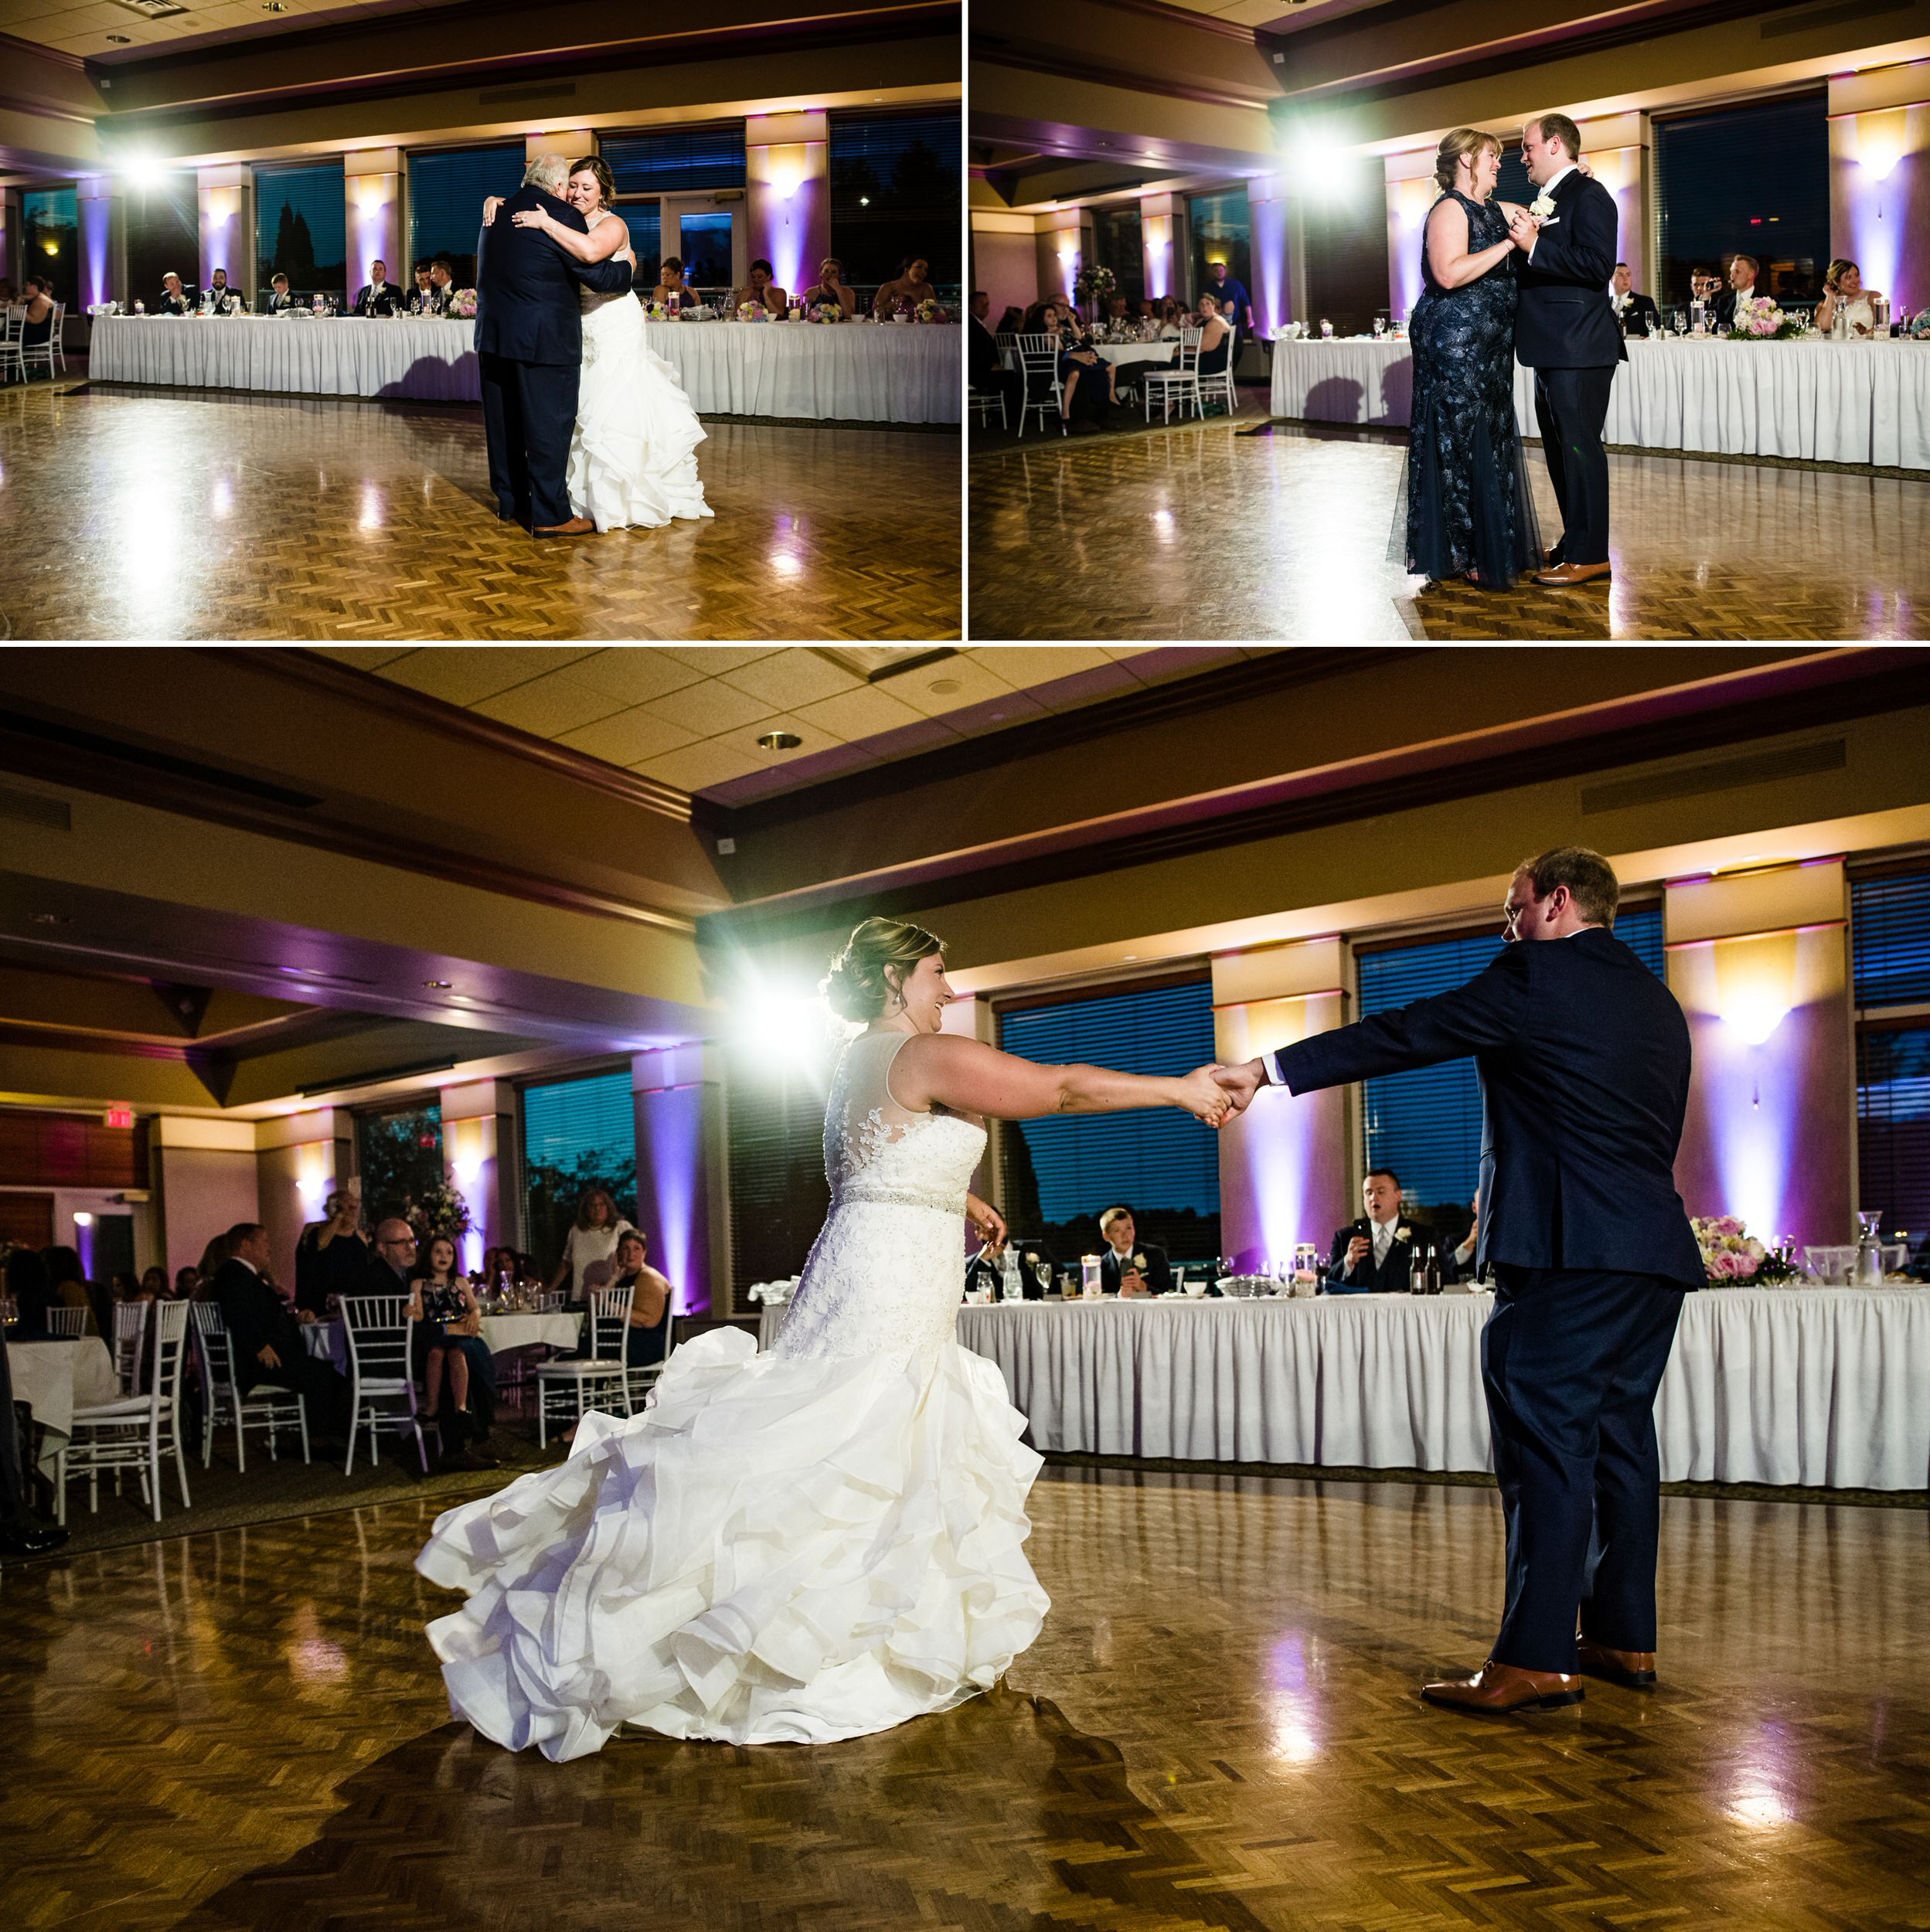 First dances during an August wedding at Sand Creek Country Club.